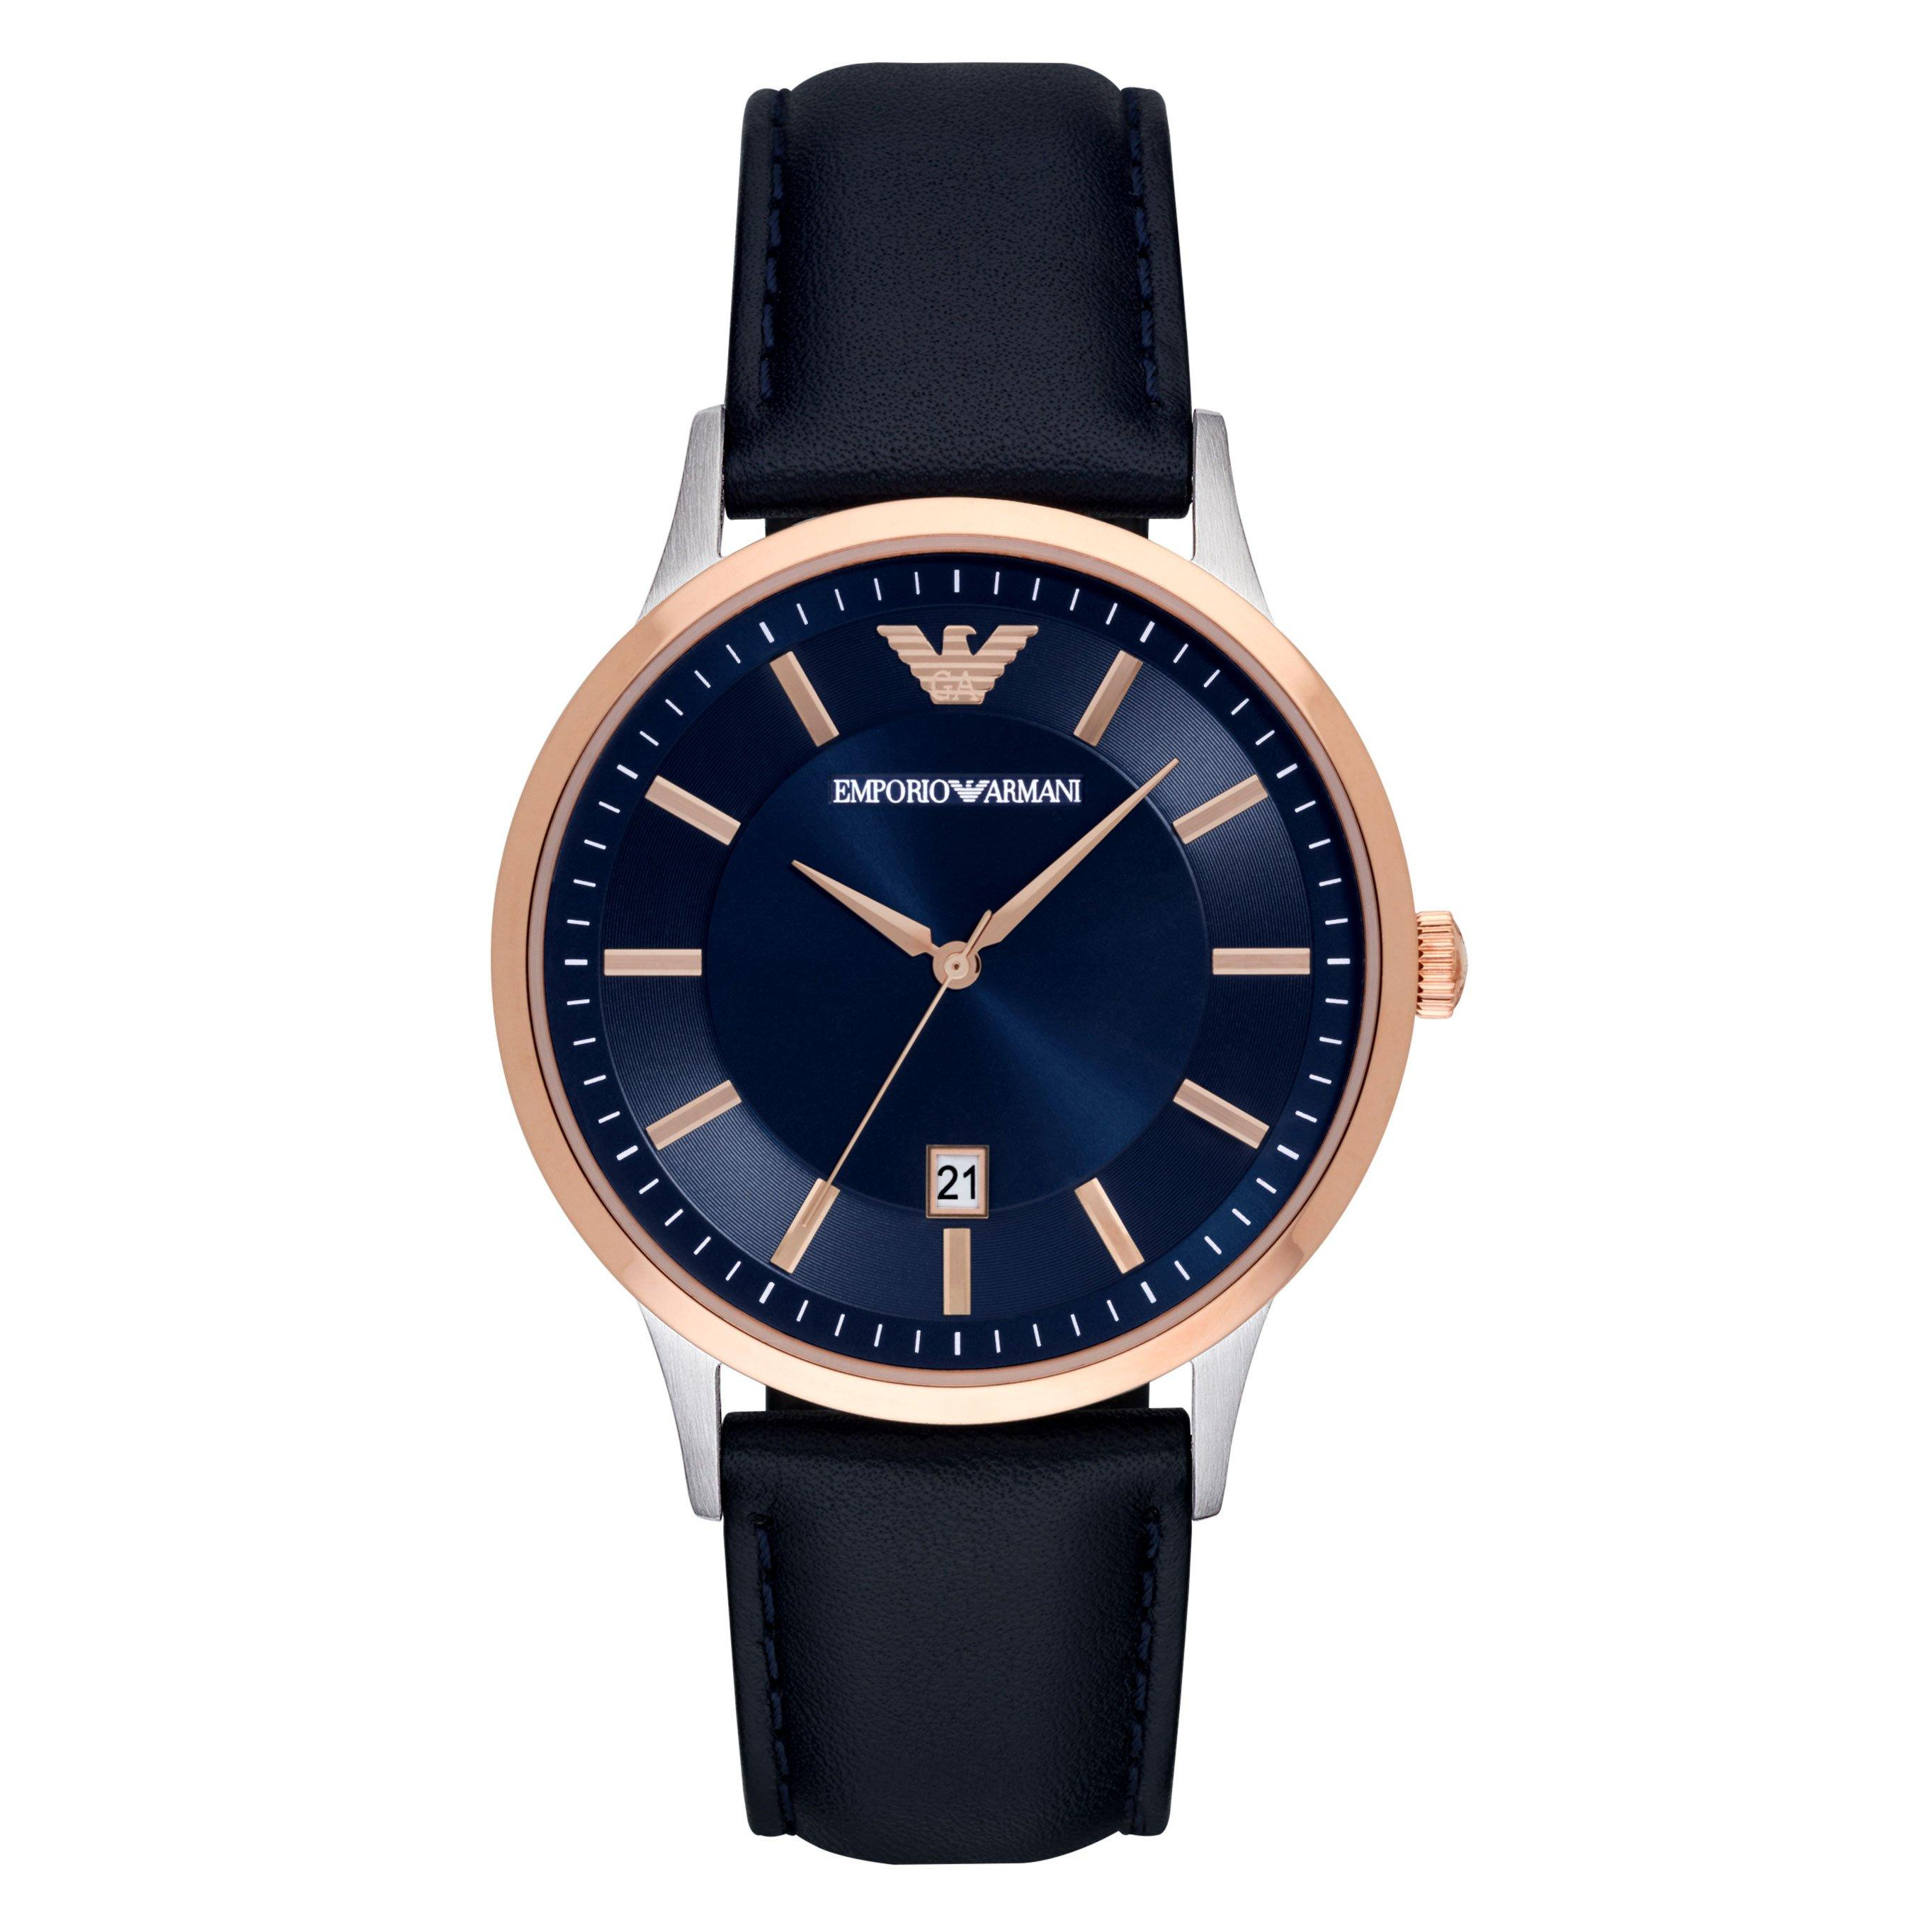 Emporio Armani Rose Gold Plated Men's Watch